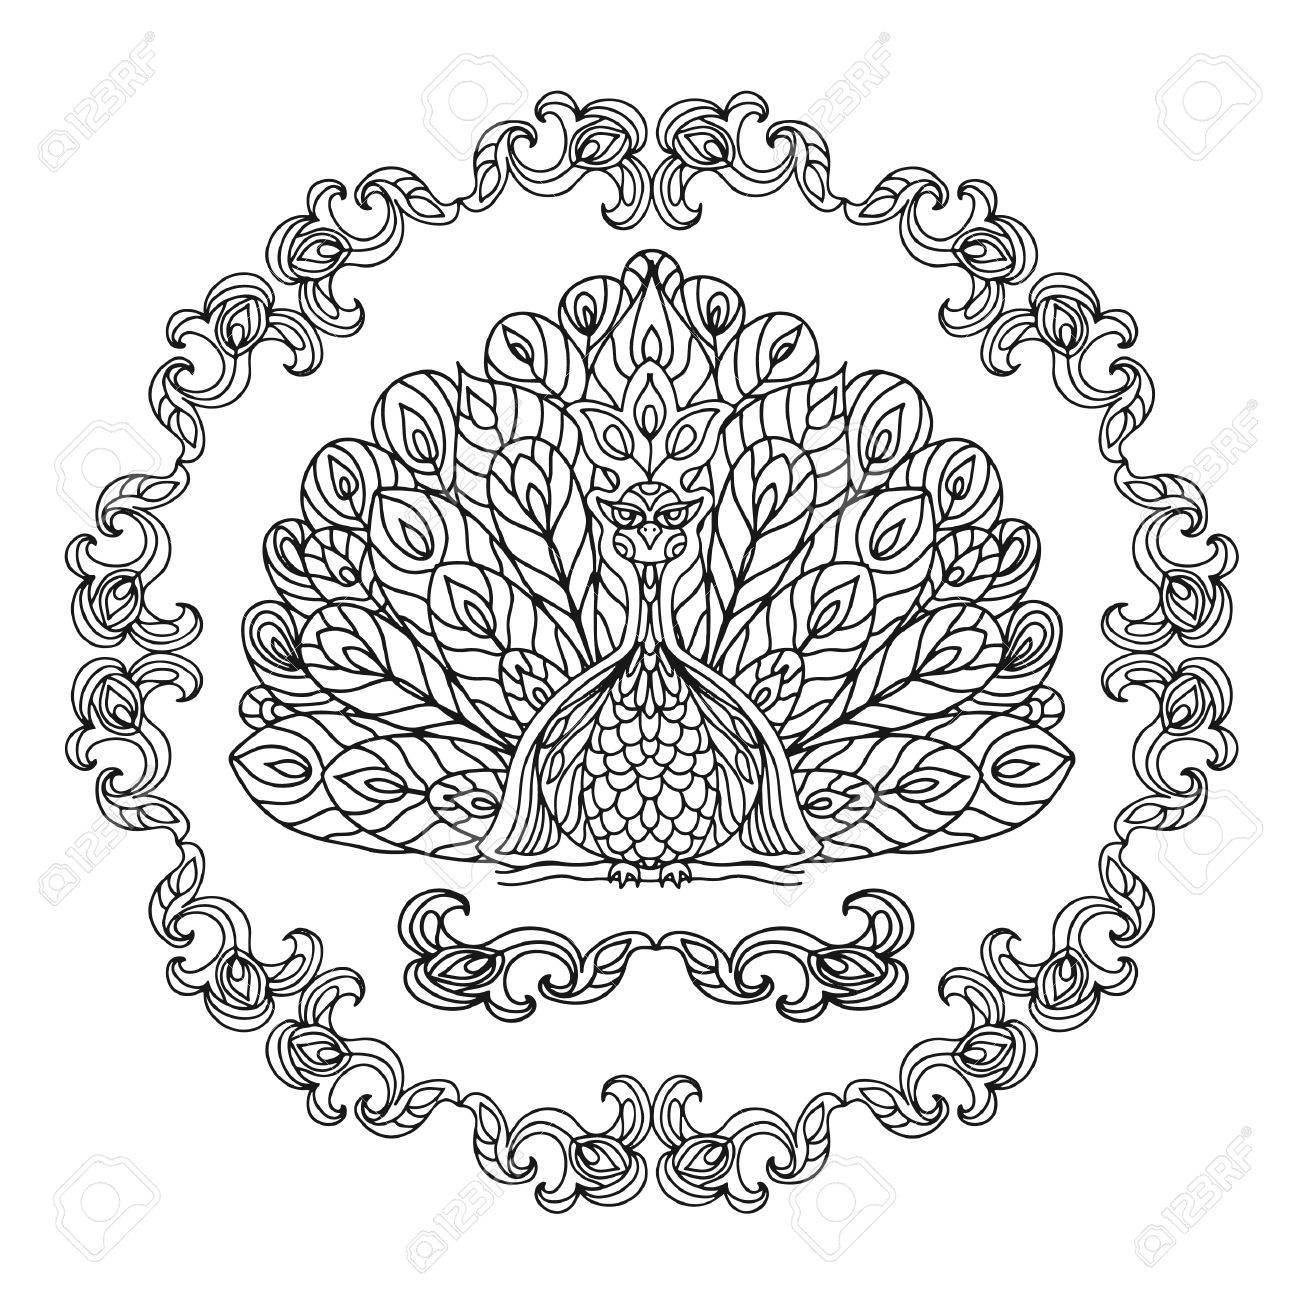 peacock coloring page stock vector 48907768